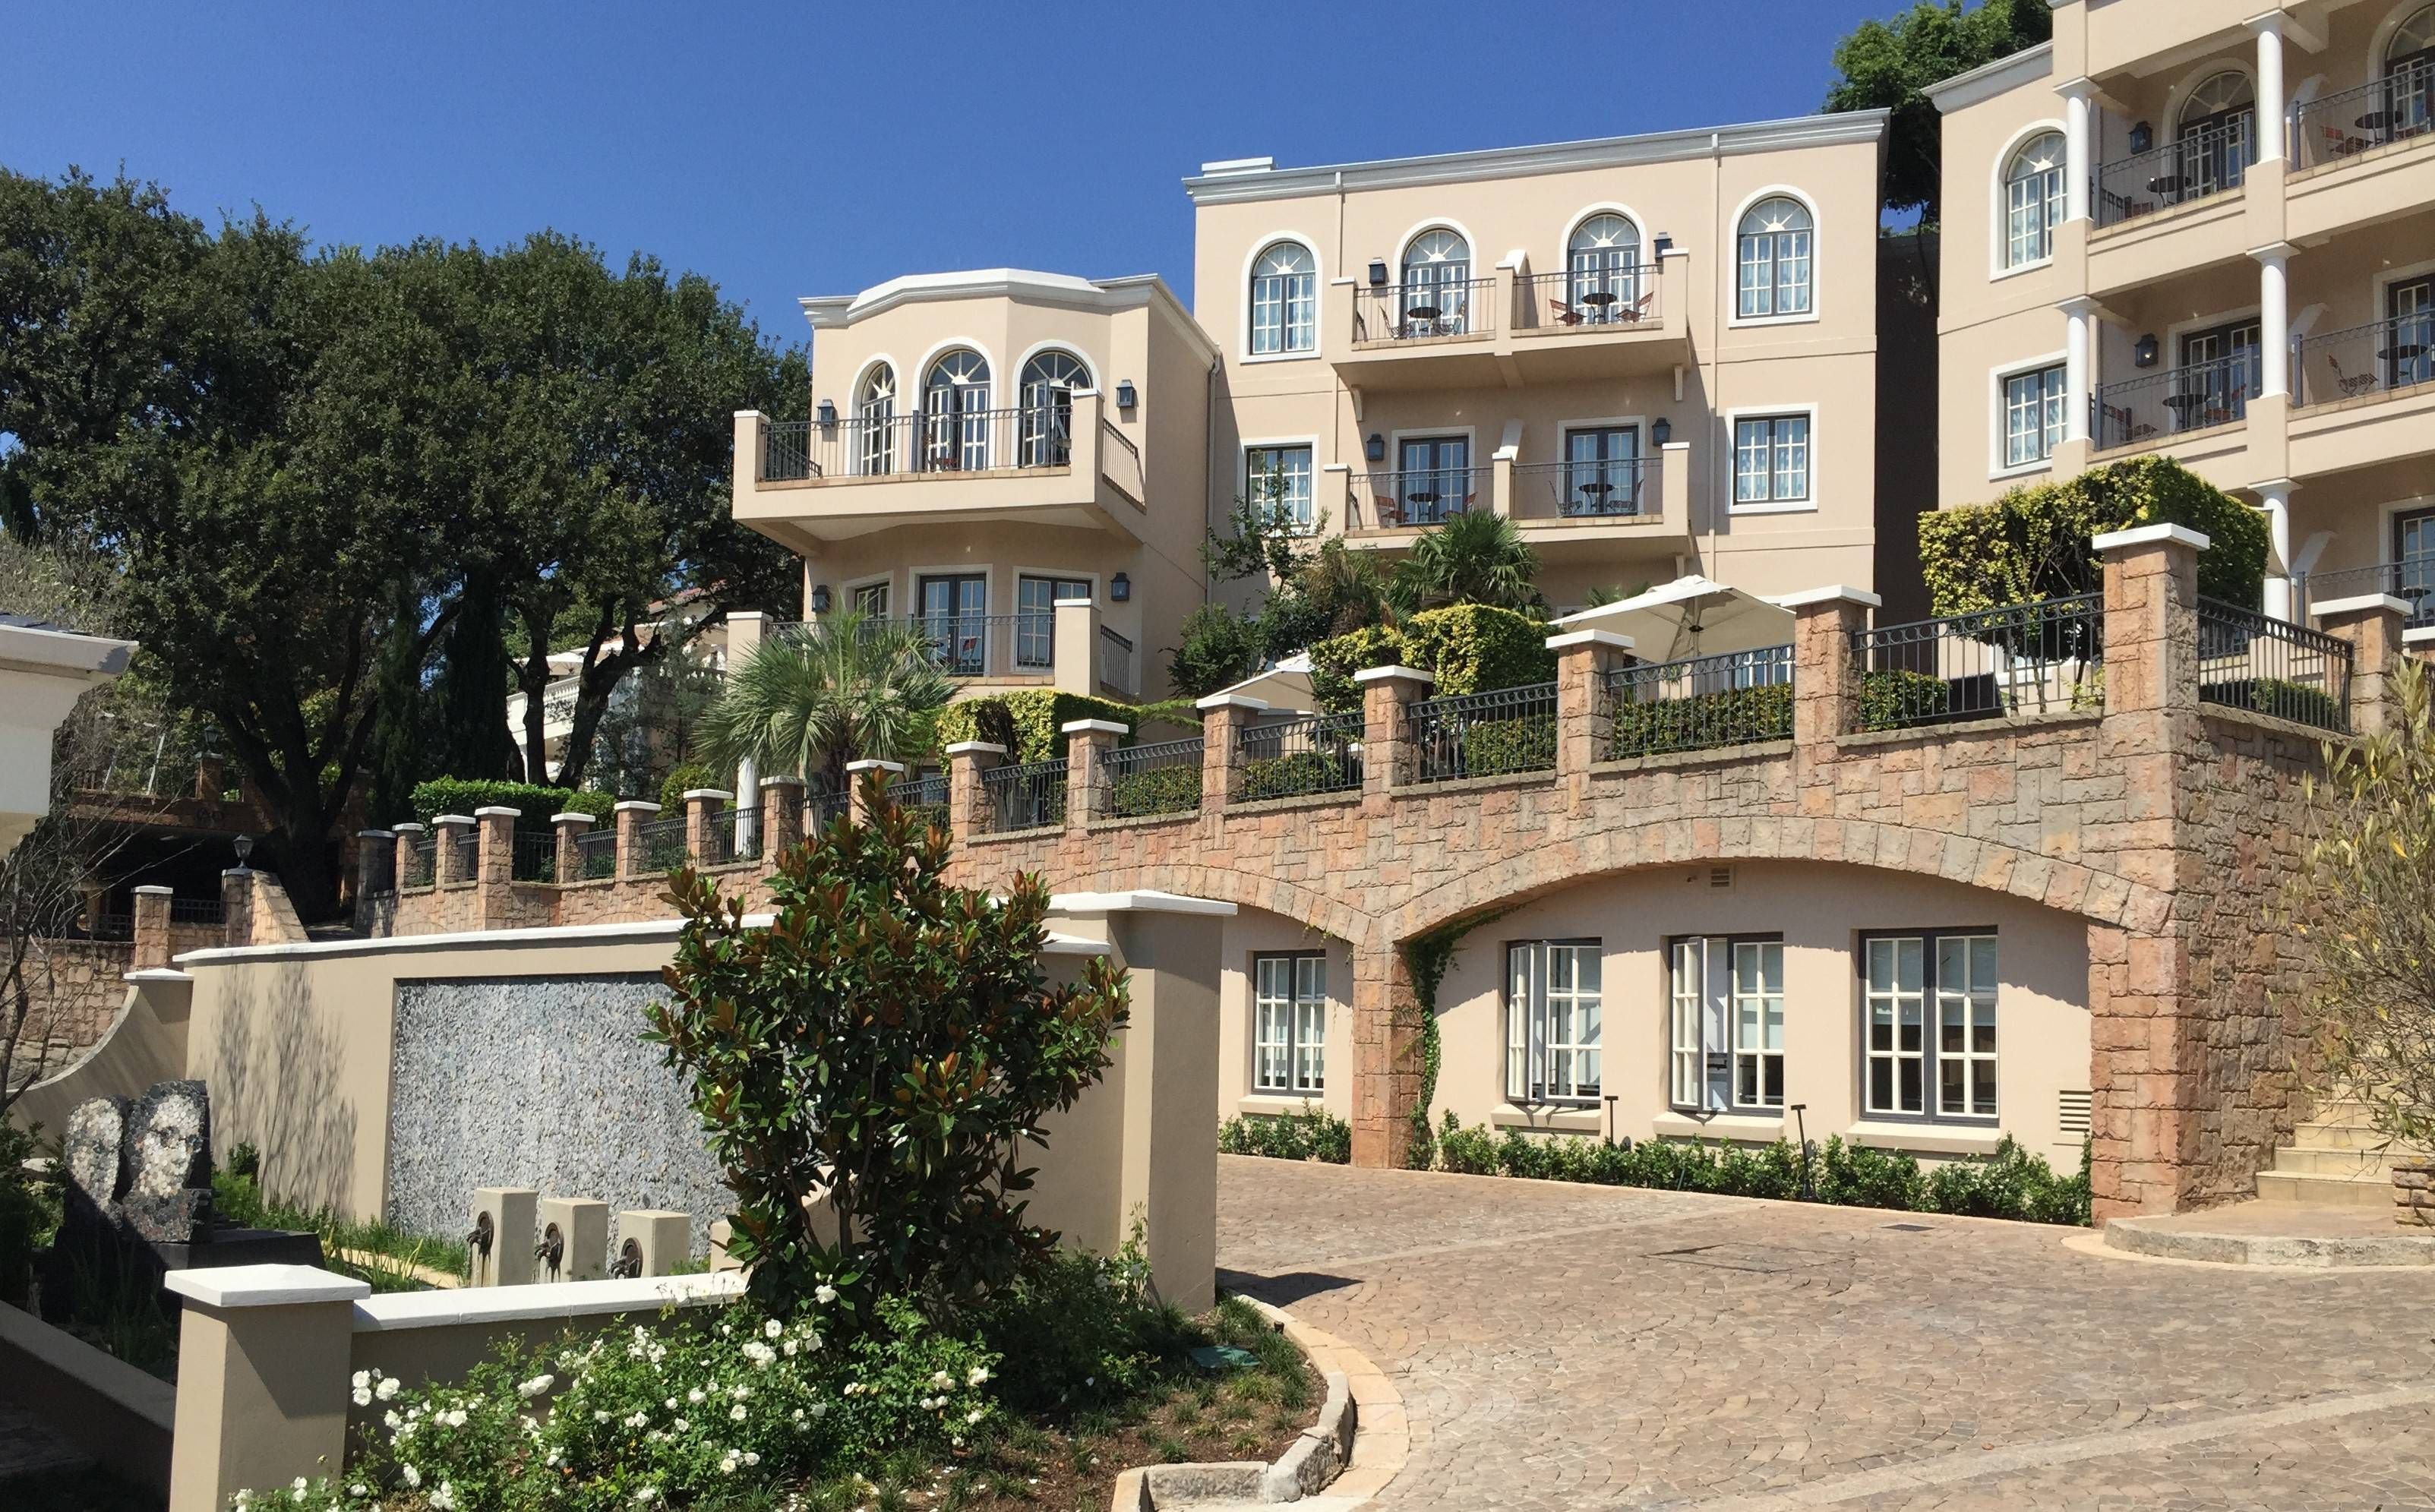 Four Seasons Hotel The Westcliff Johannesburg